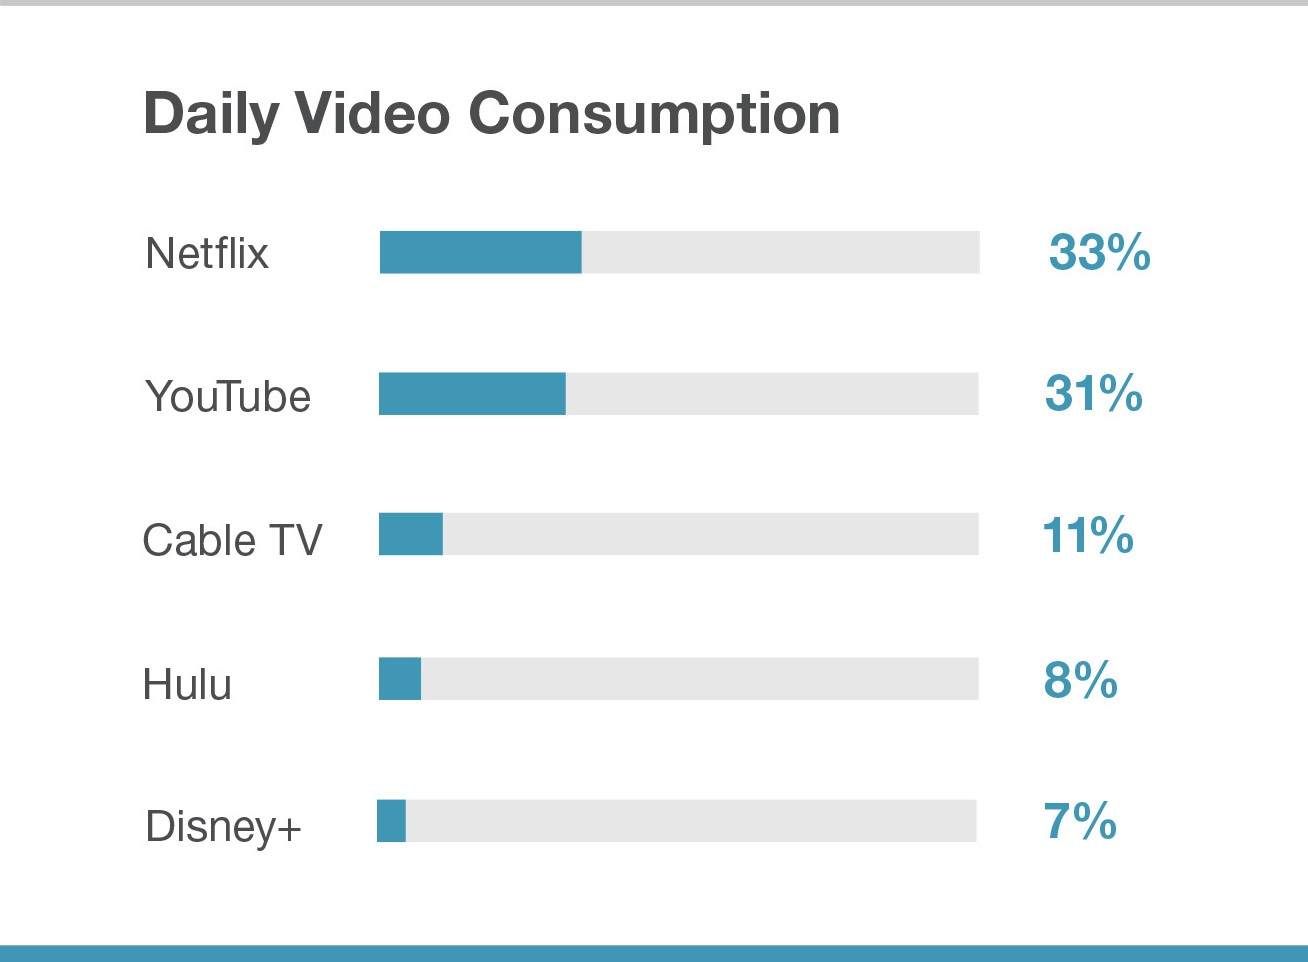 Netflix and YouTube Are The Two Most Popular Video Streaming Platform Among Teenagers